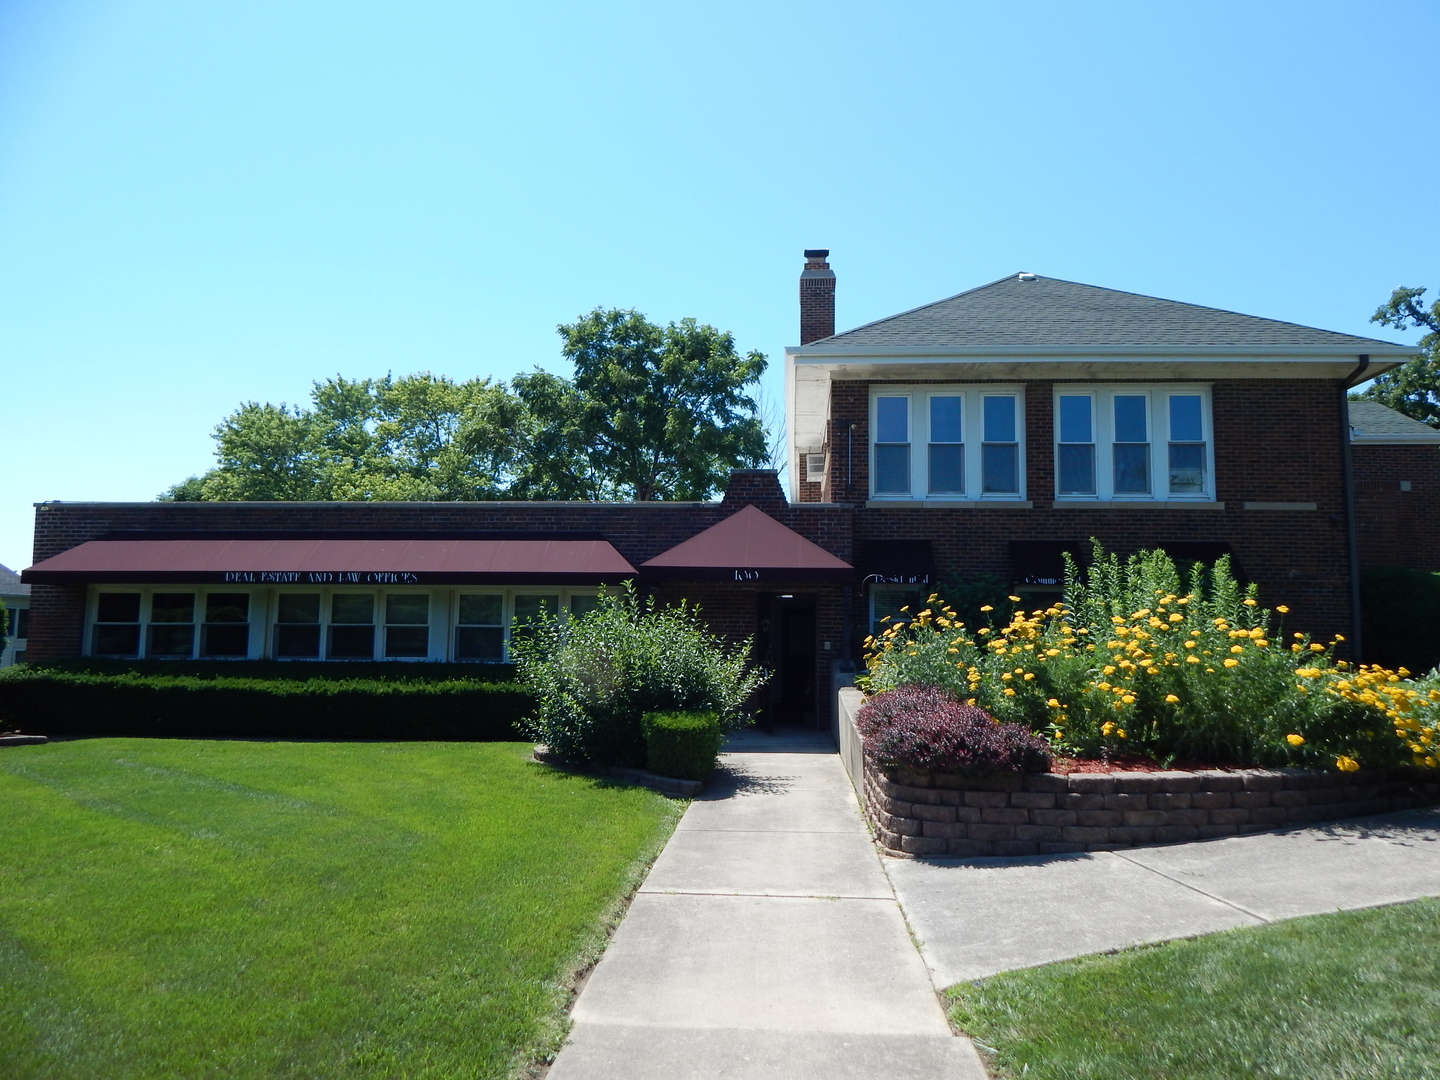 100 Hahndorf Road, West Chicago IL 60185 - Photo 1